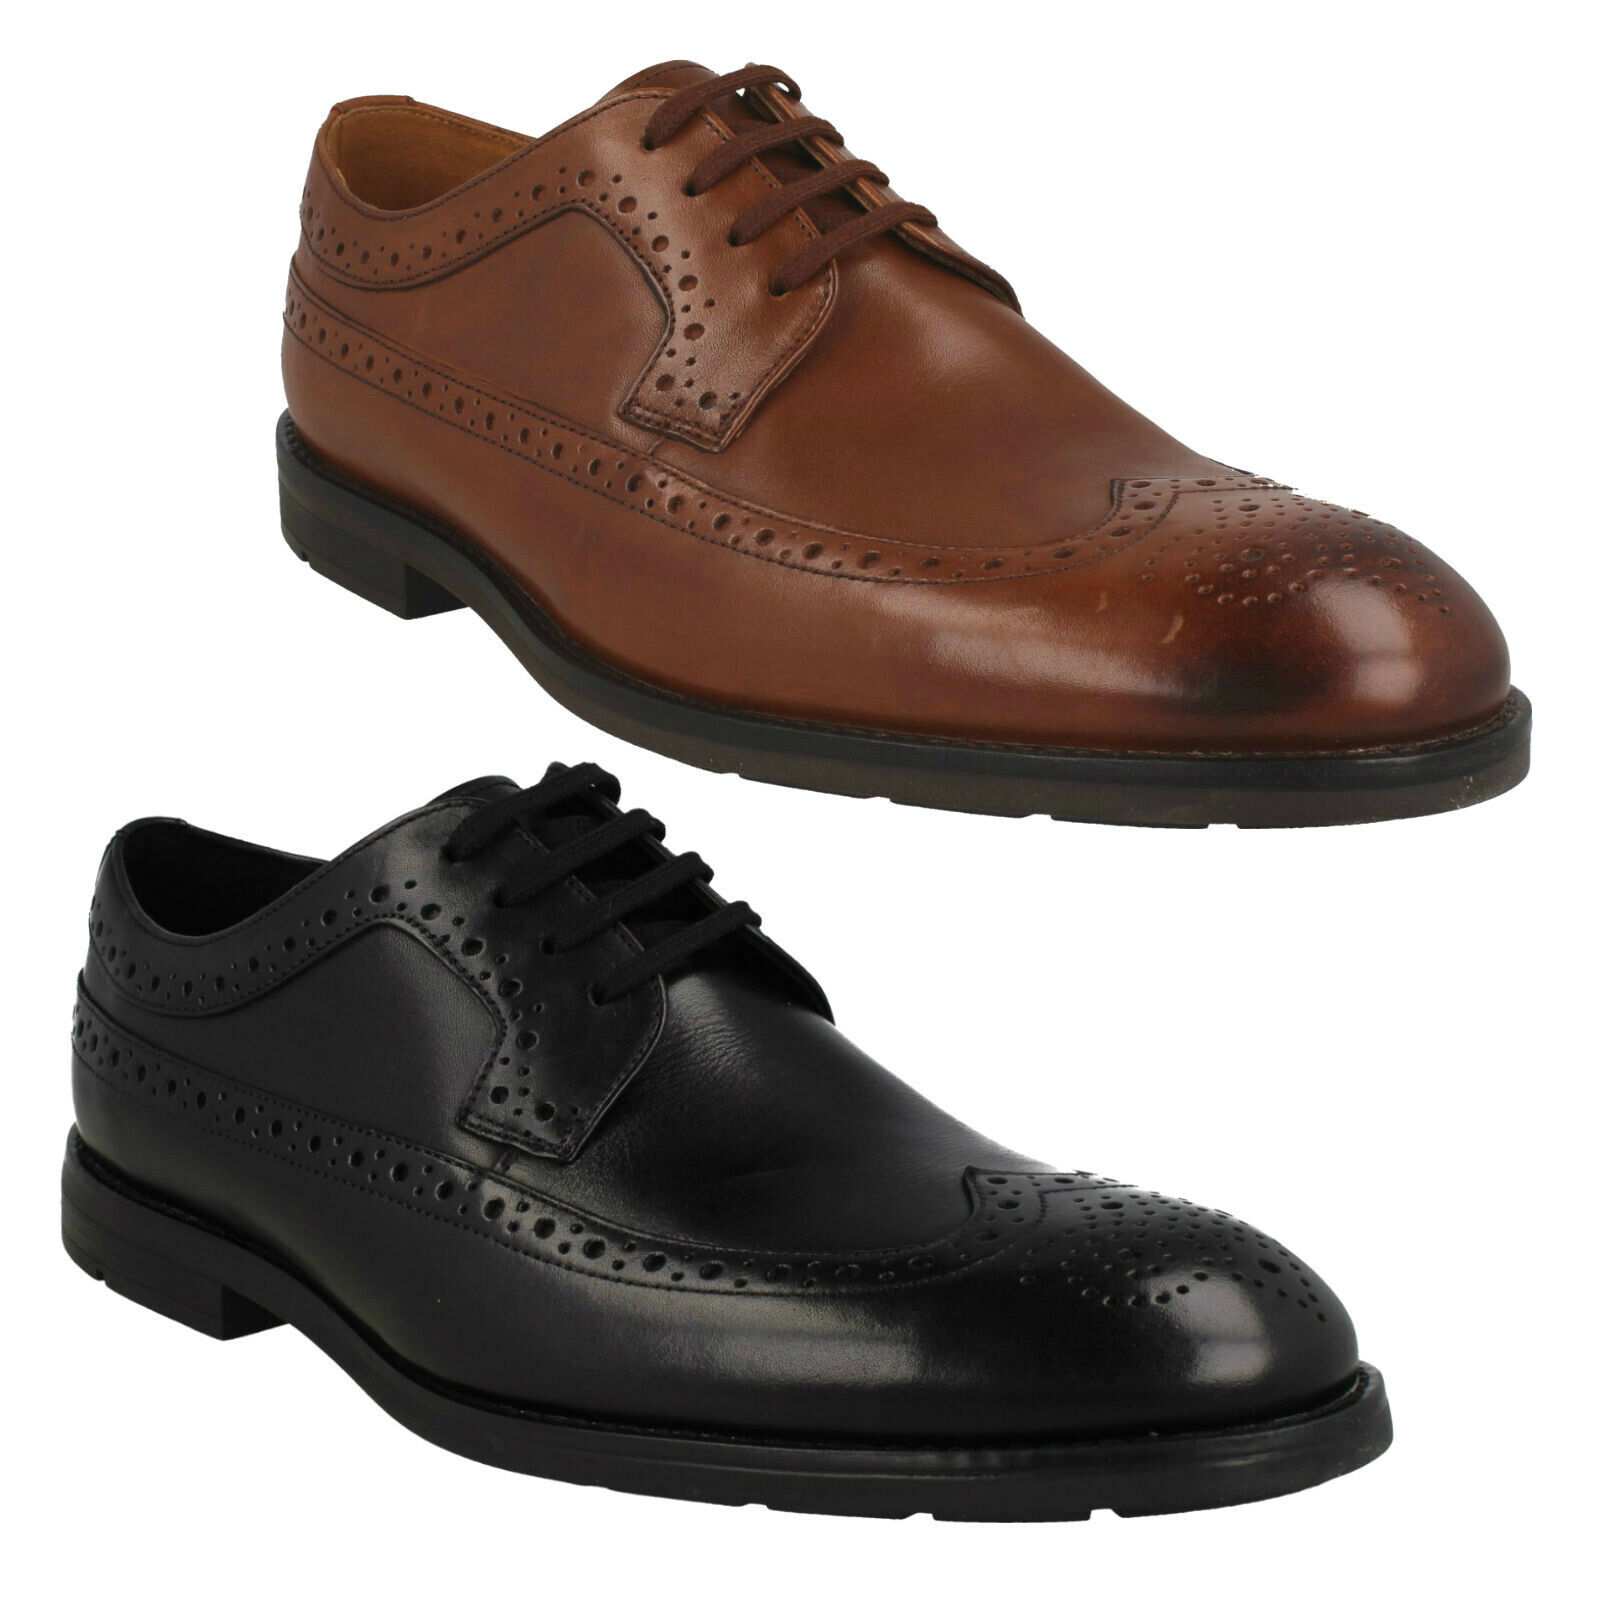 RONNIE LIMIT MENS CLARKS LEATHER FORMAL WEDDING LACE UP OCCASION WING TIP SHOES